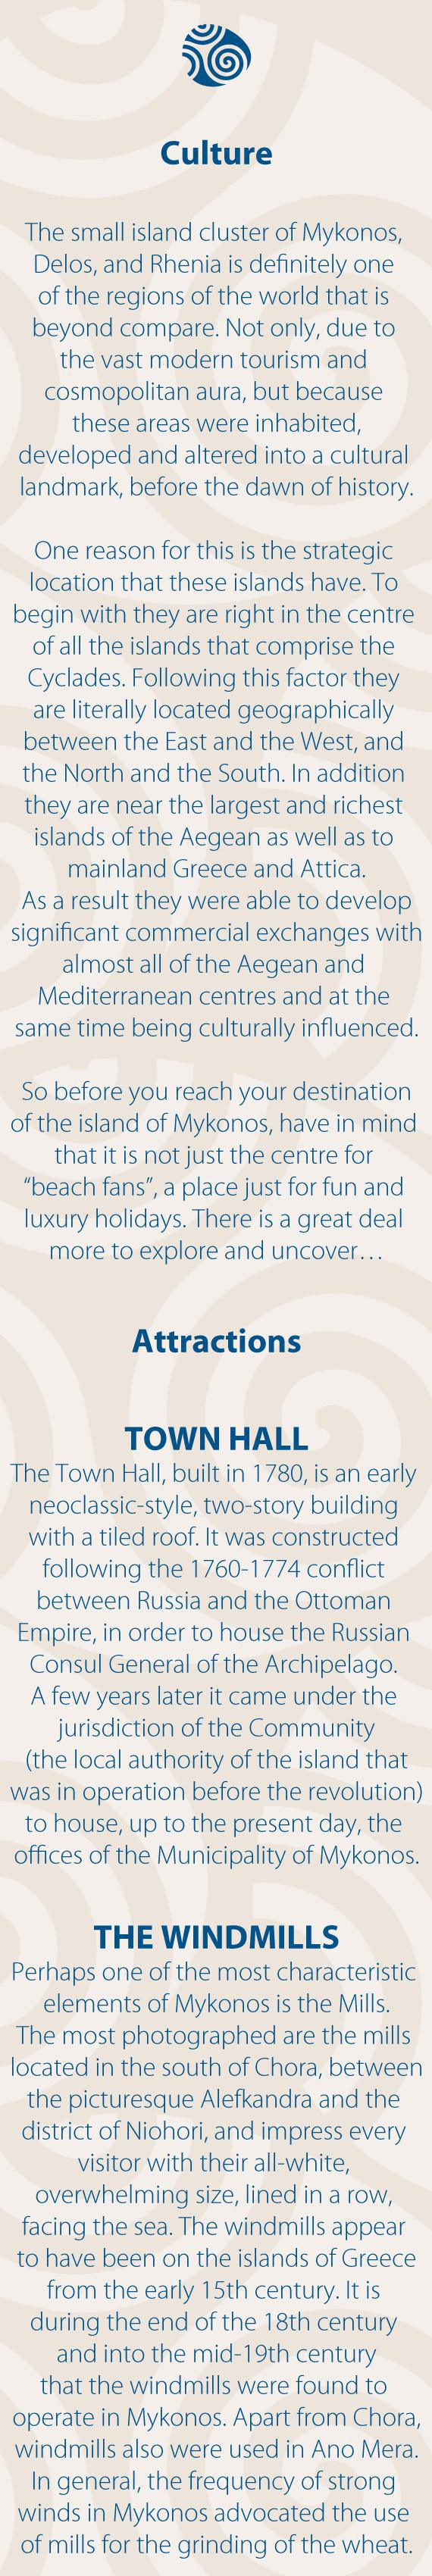 Culture & Attractions